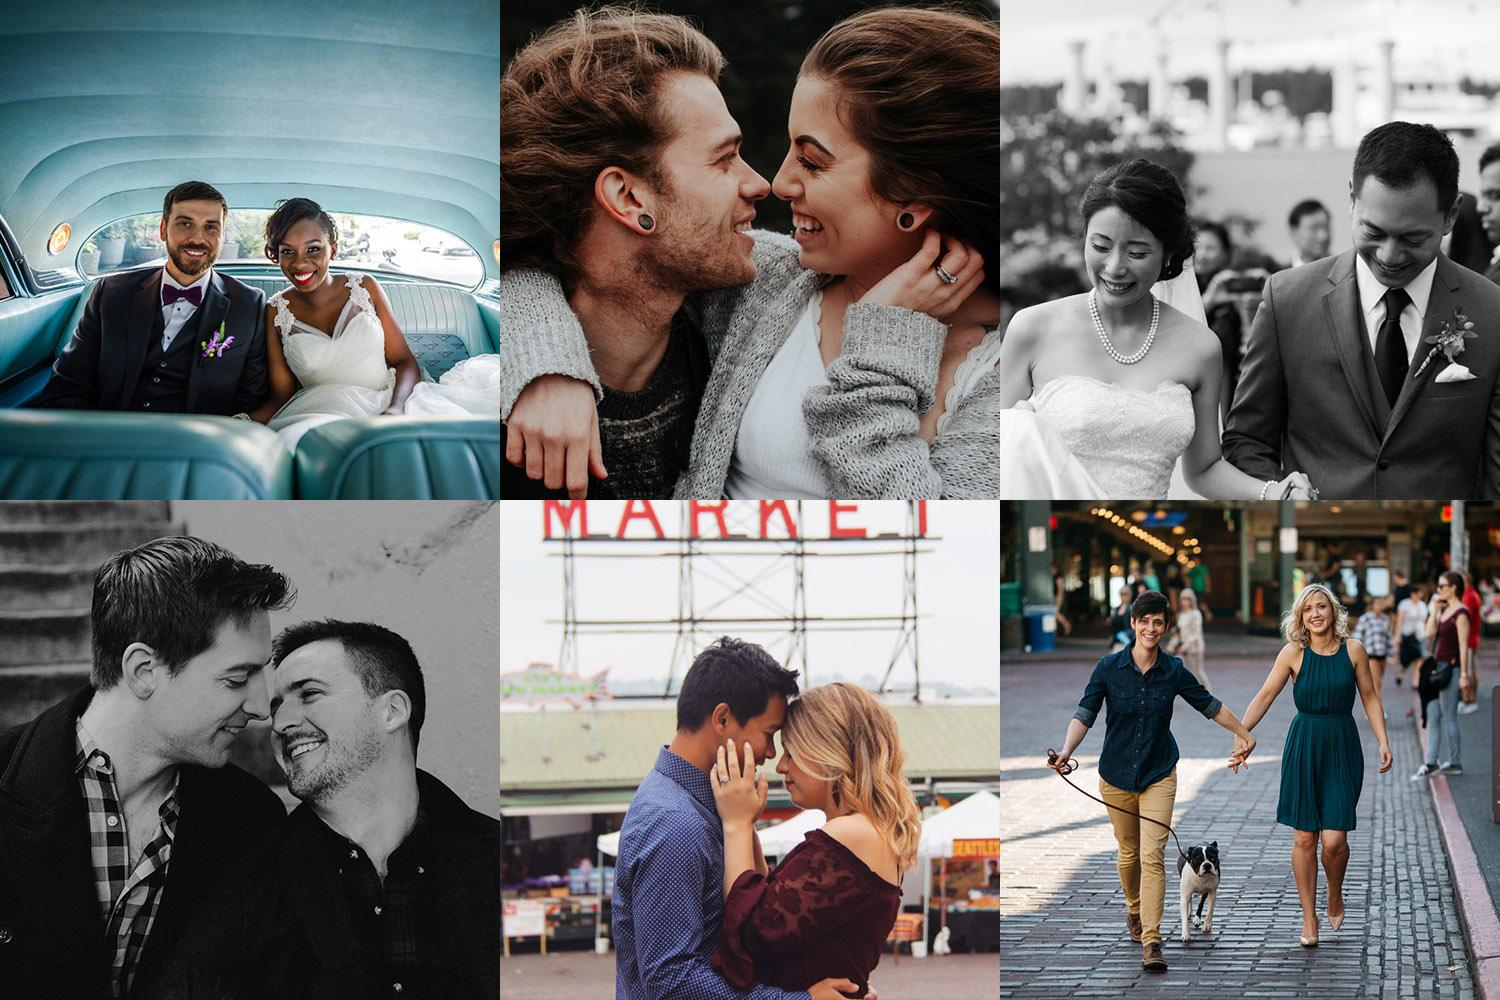 We told the stories of over 30 couples this last year, and it was one of the best things we've ever done. It's called our Documenting Love series, and we're not done! Every week that we have participants, we tell the story of a couple in love and living in the PNW. If you would like to participate - then YAY! Email us at hello@seattlerefined.com. (Image: Alexandra Celia /{&amp;nbsp;}Jenny GG Photography /{&amp;nbsp;}Rick Takagi Photography /{&amp;nbsp;}Vicki Ferguson Photography)<p></p>